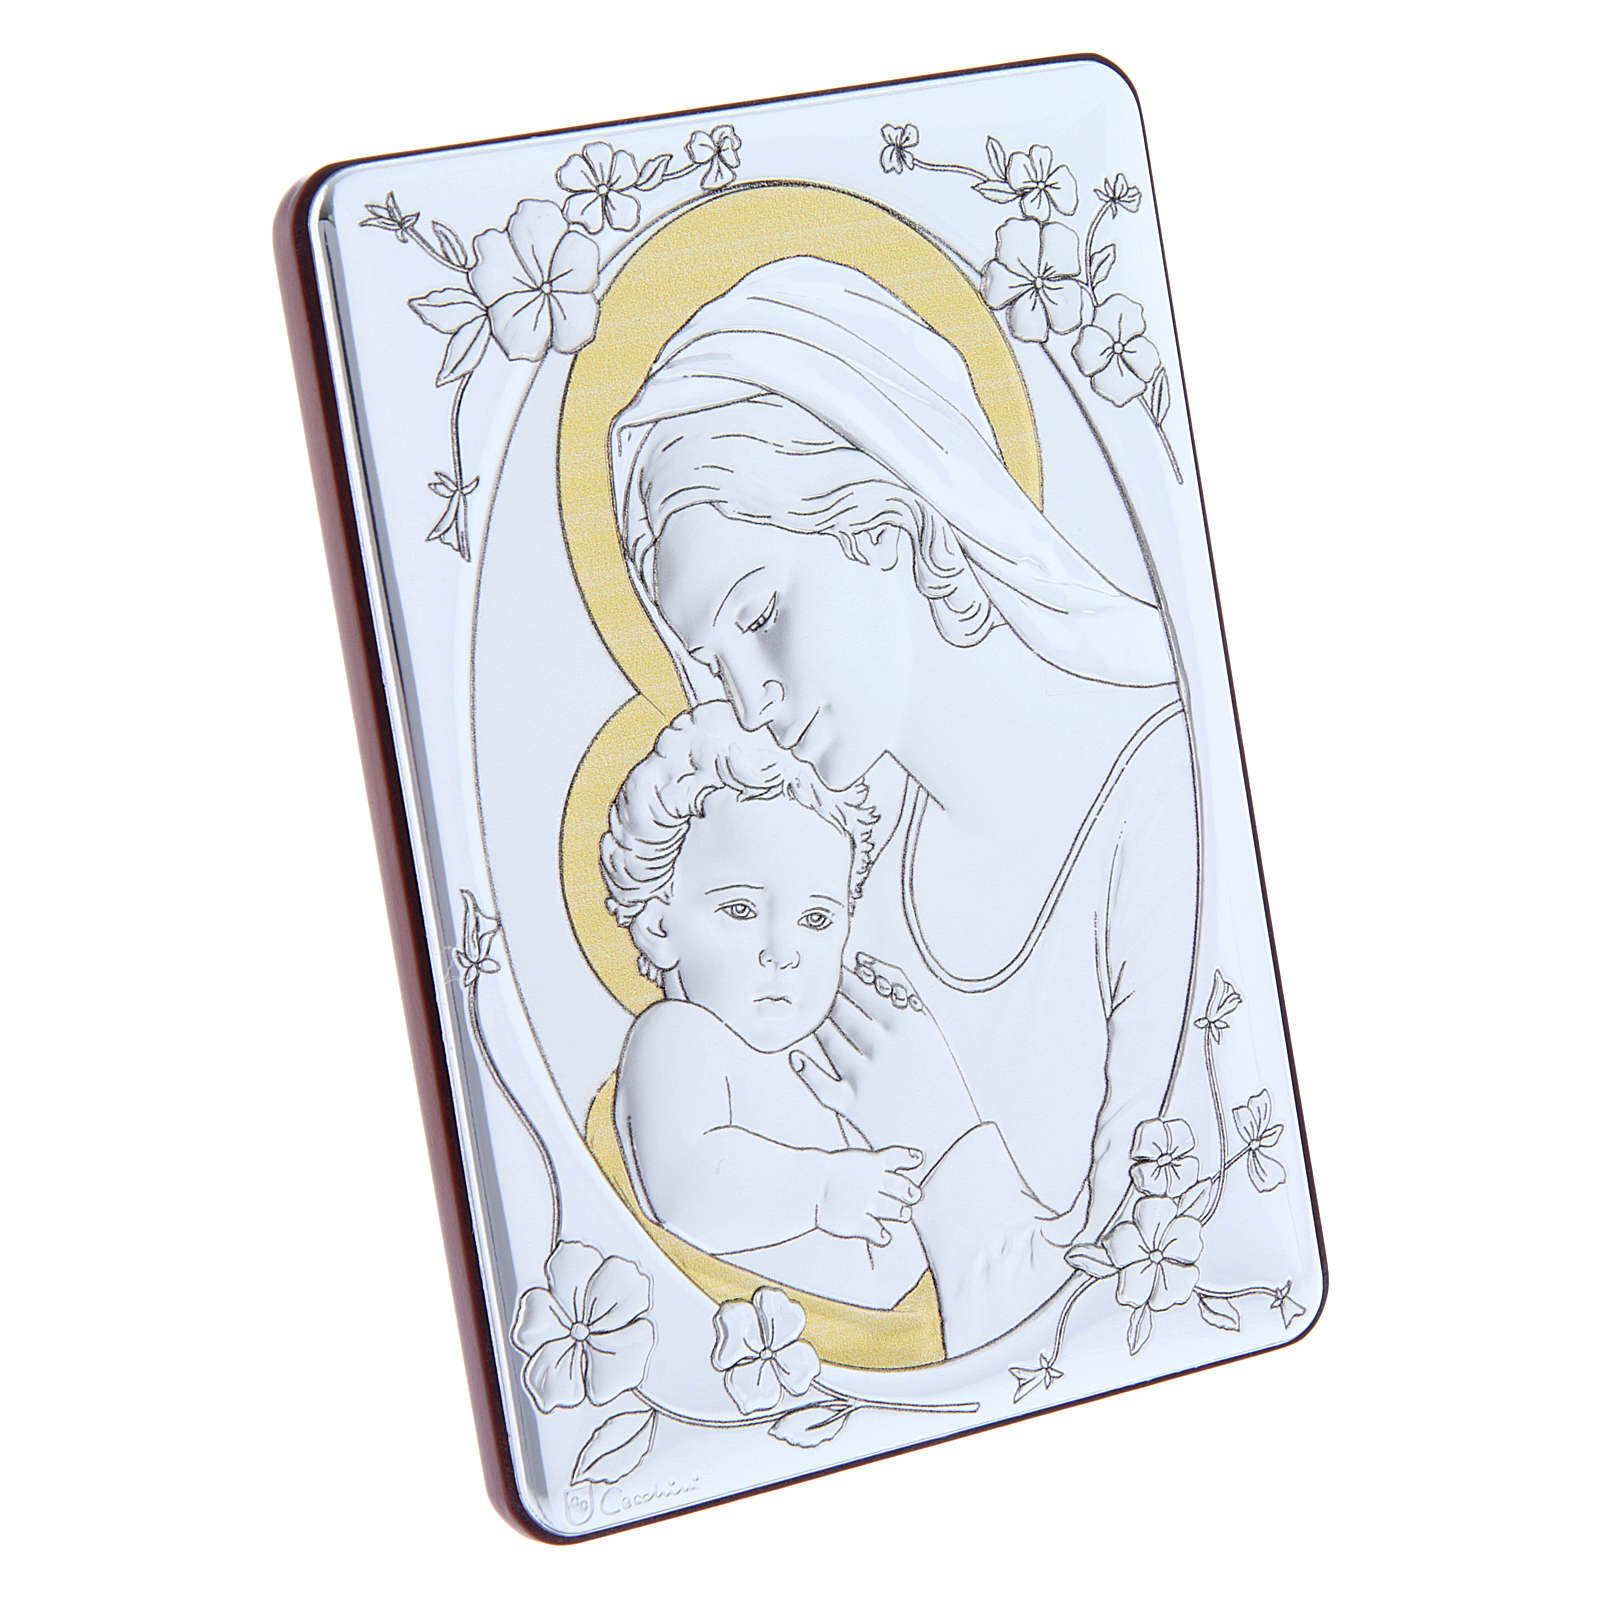 Our Lady with Baby Jesus painting finished in gold, made of laminboard with refined wooden back 14x10 cm 4